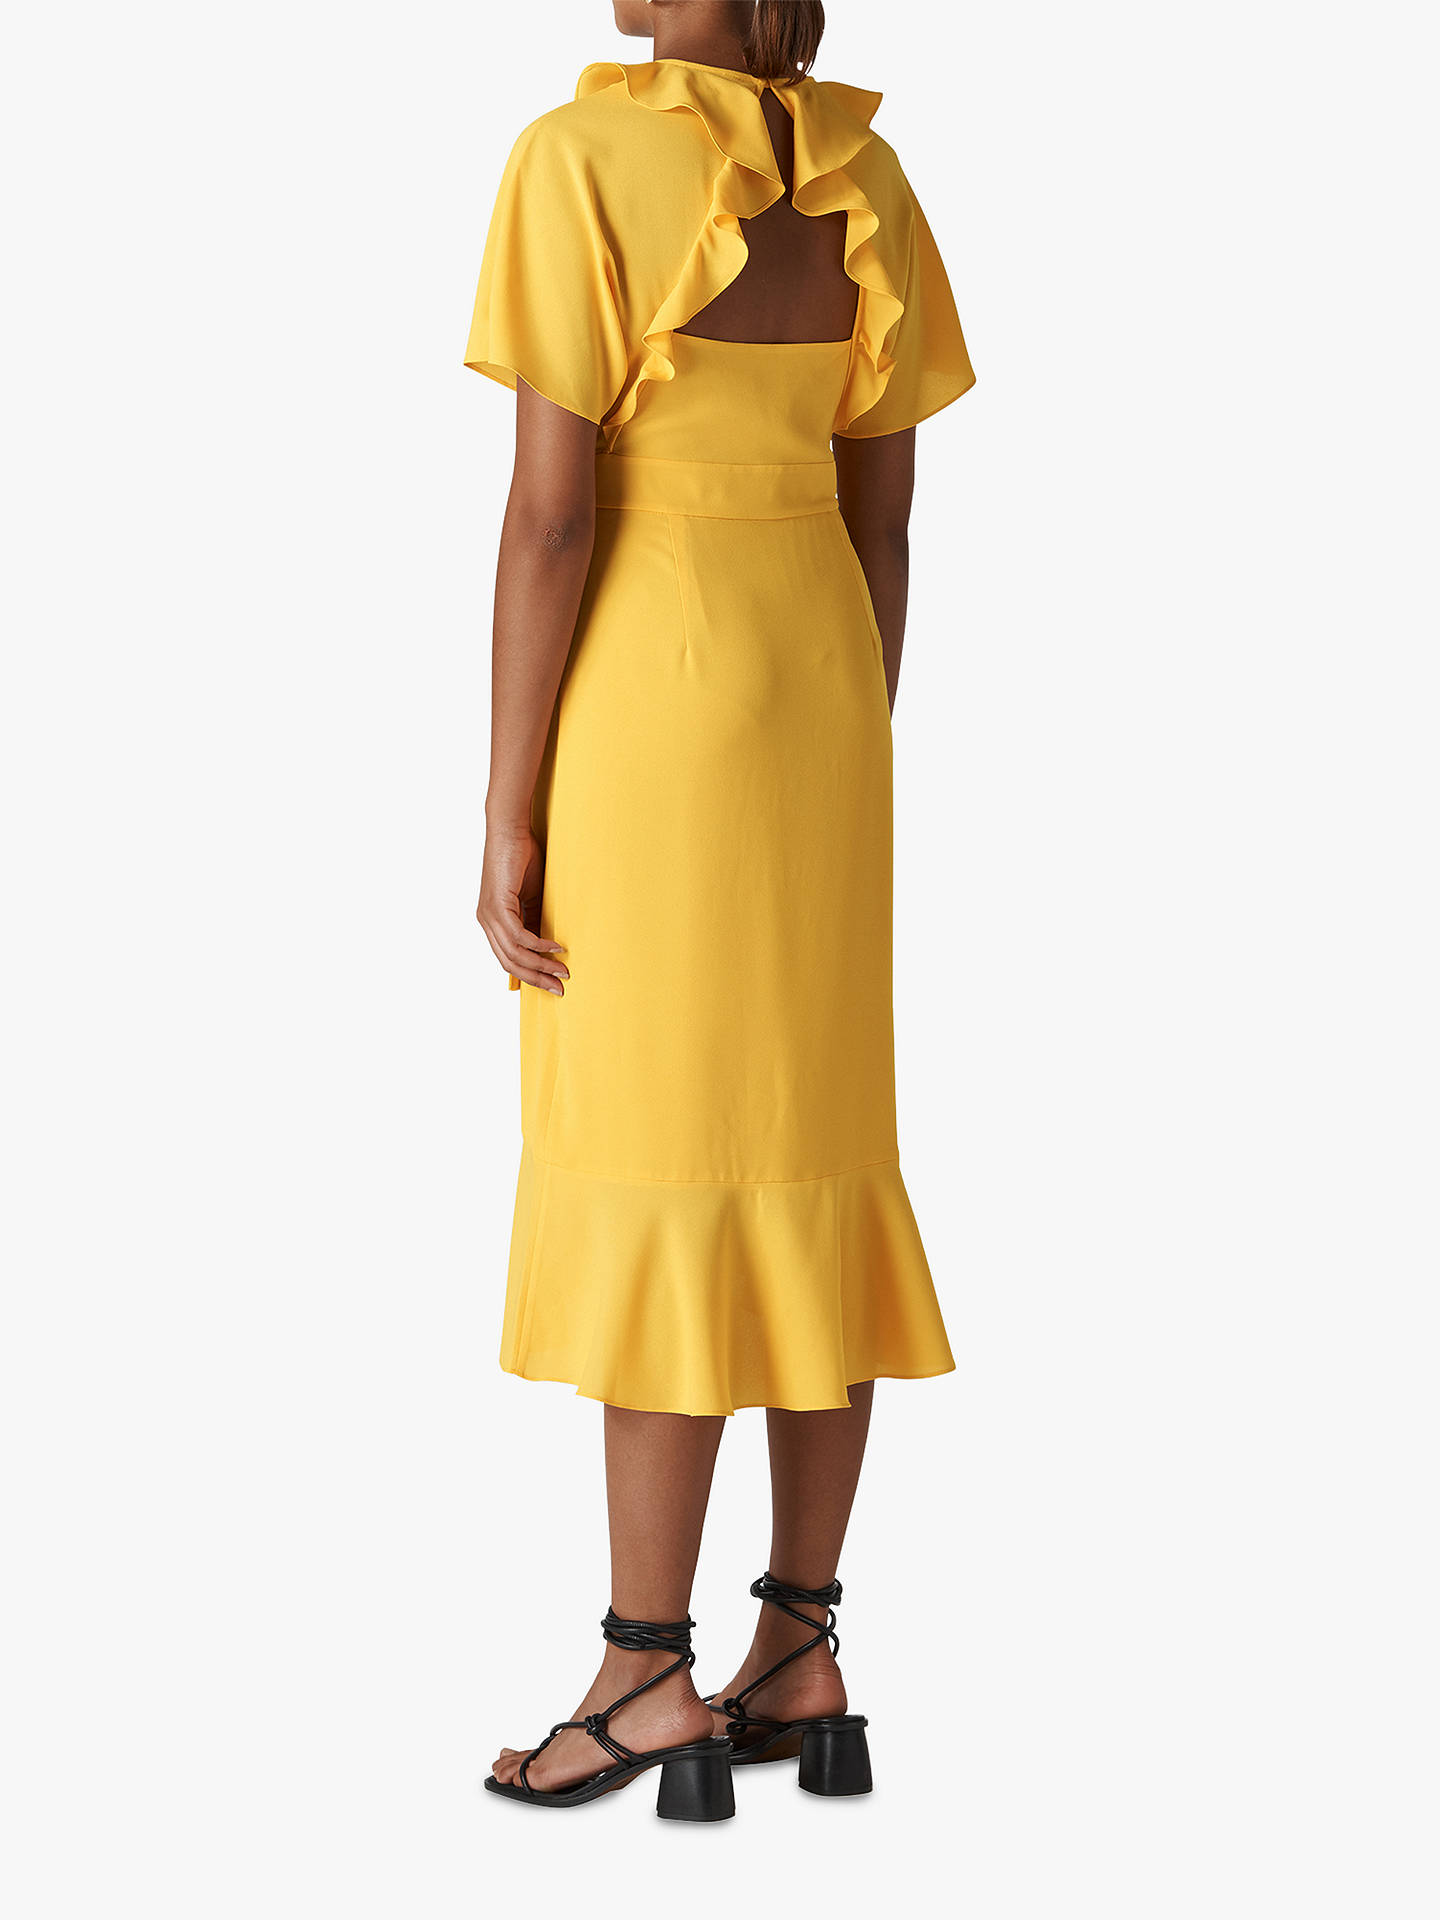 f4fc09863e ... Buy Whistles Abigail Frill Wrap Dress, Yellow, 8 Online at  johnlewis.com ...